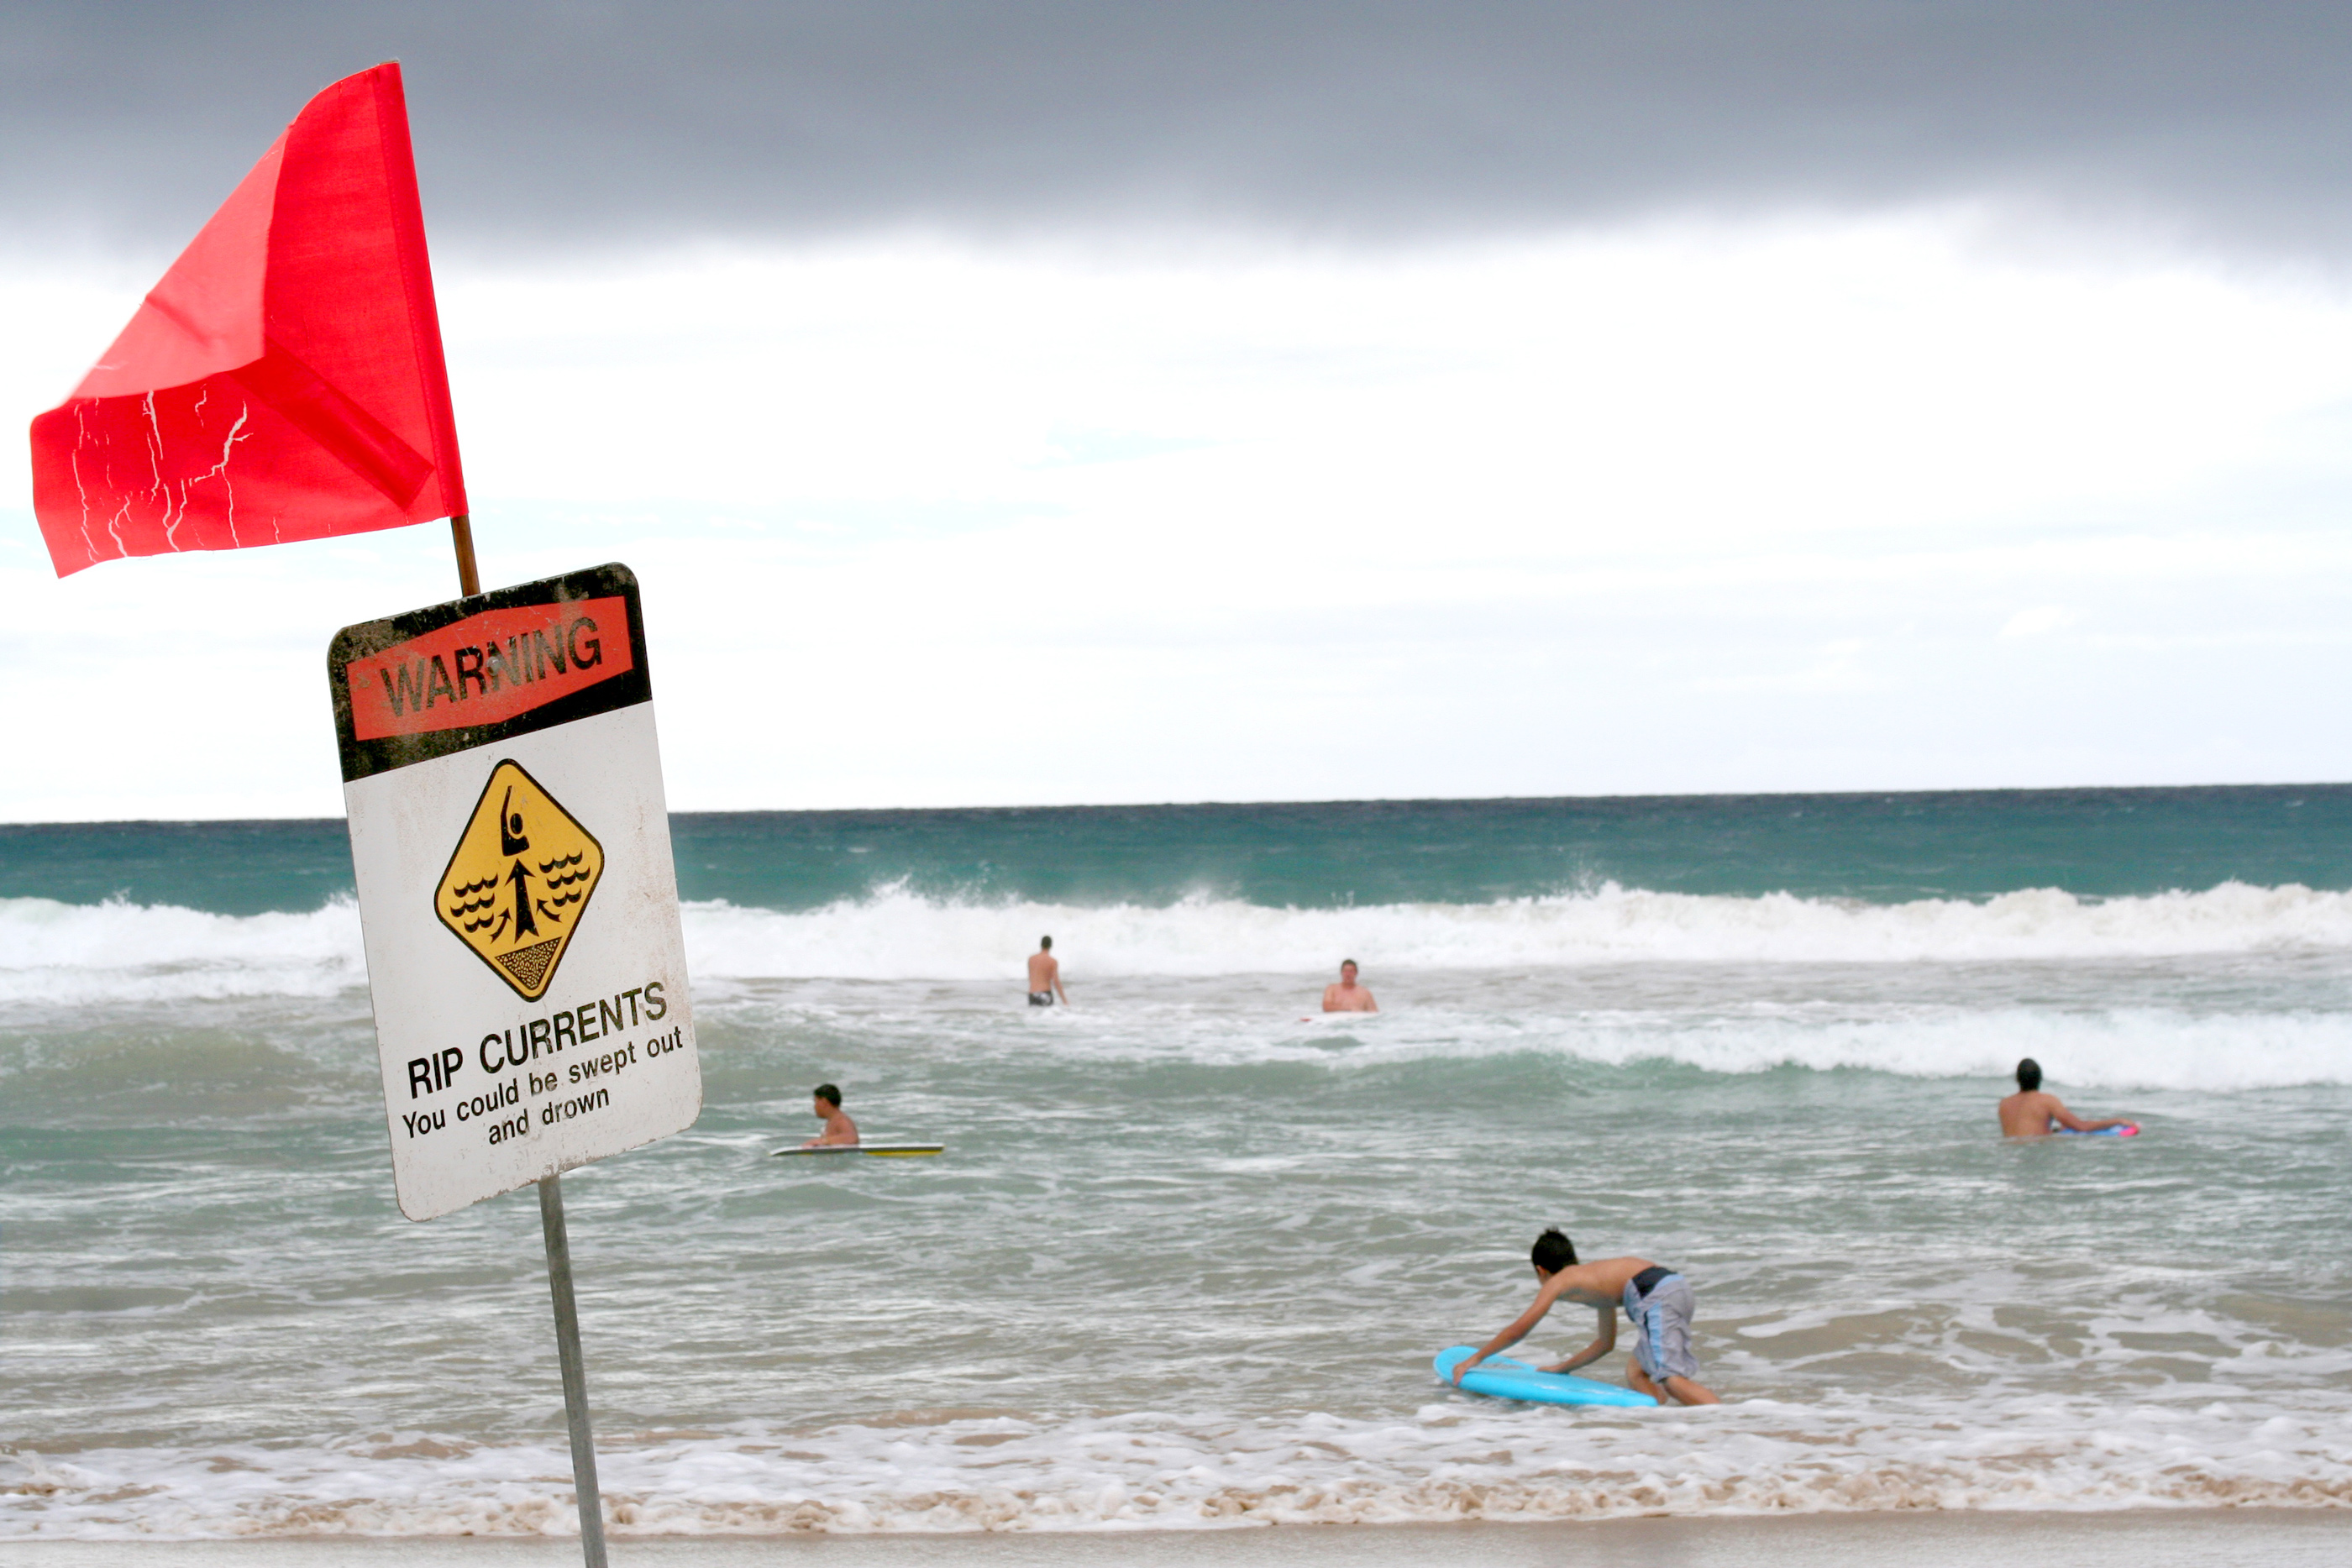 kids playing in the ocean with a rip current warning sign